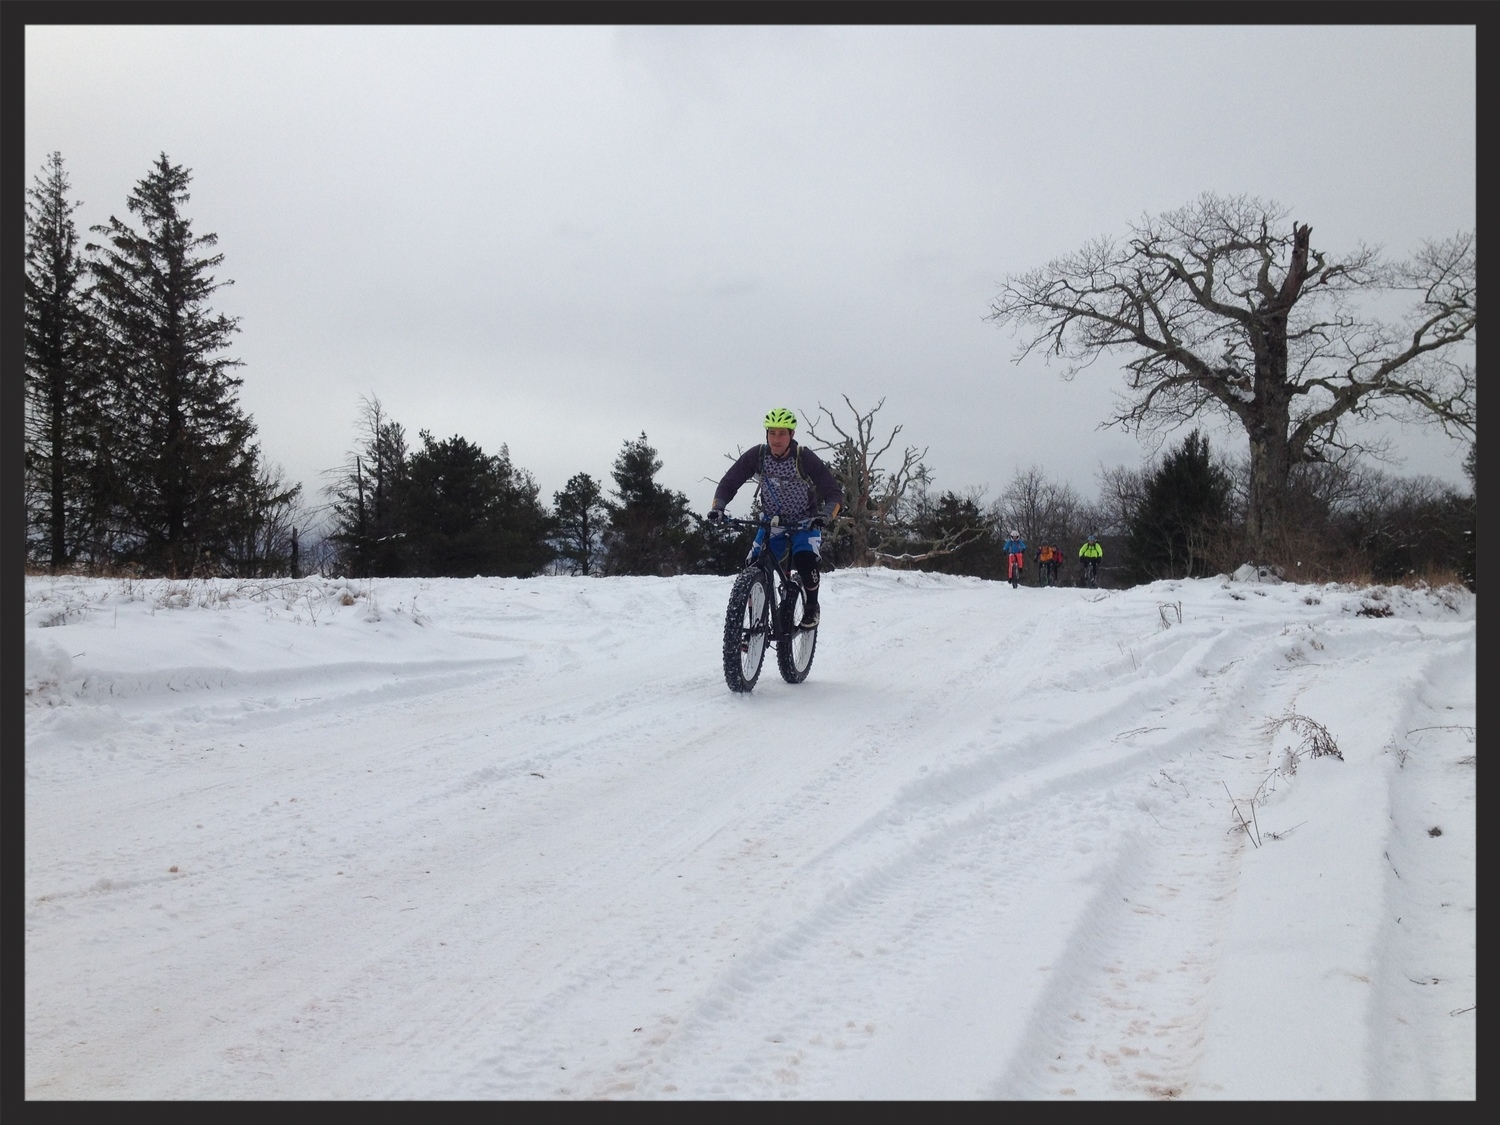 Collin Loves the fat bike in the snow